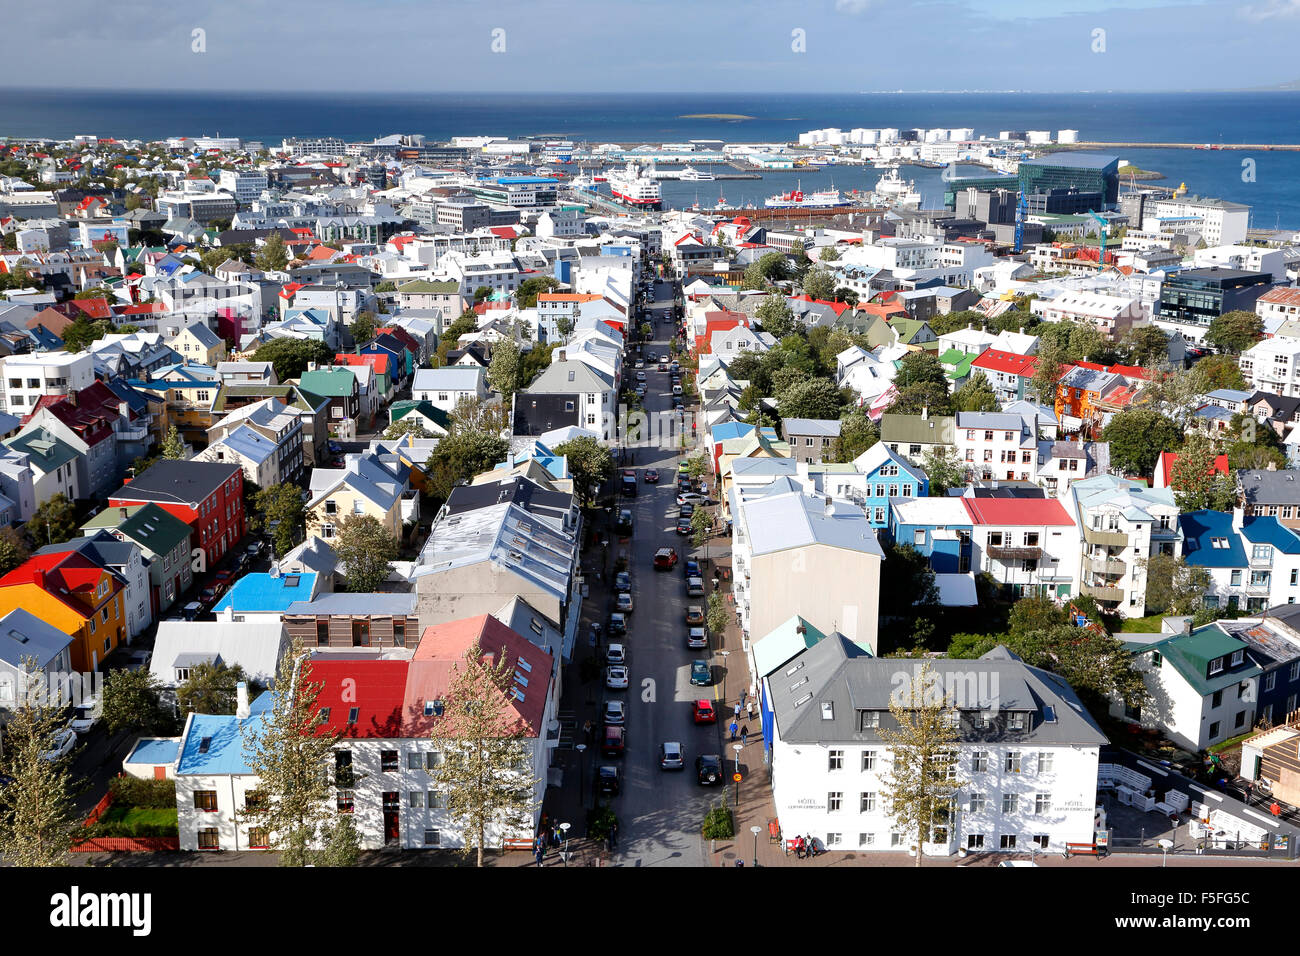 Aerial view of Reykjavik, Iceland - Stock Image